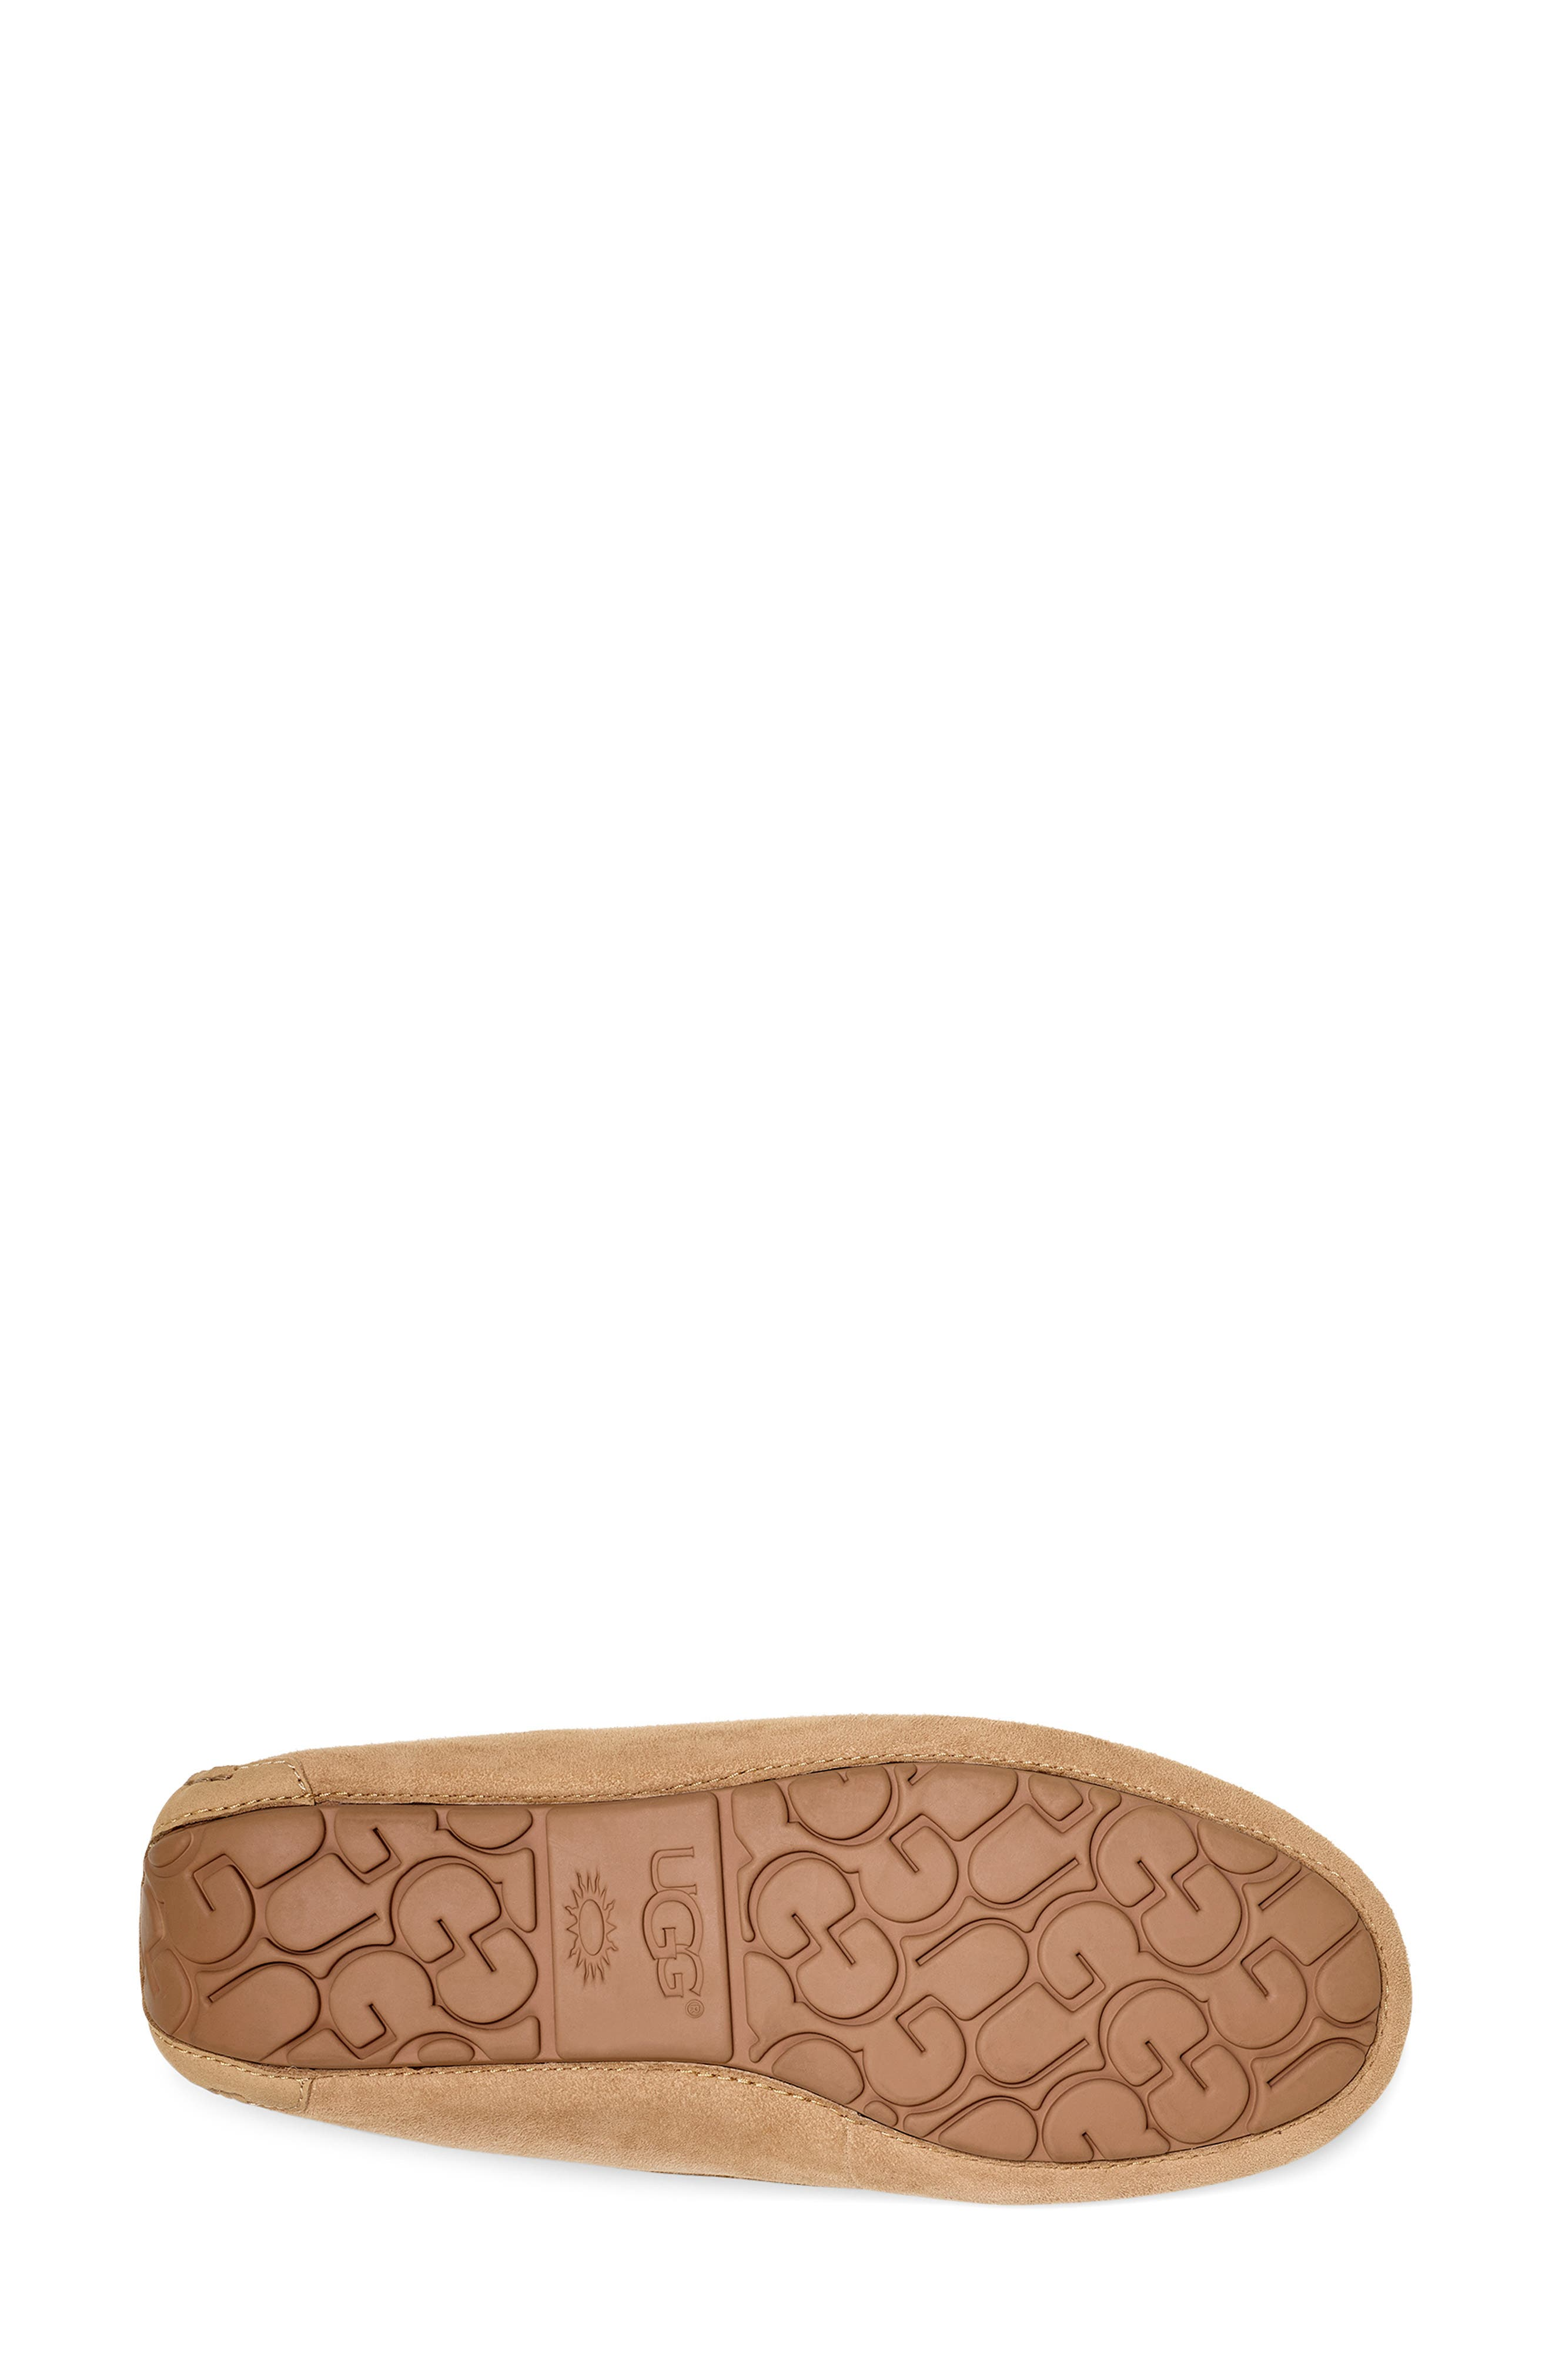 UGG<SUP>®</SUP>, Ansley 40:40:40 Anniversary Slipper, Alternate thumbnail 5, color, SAND